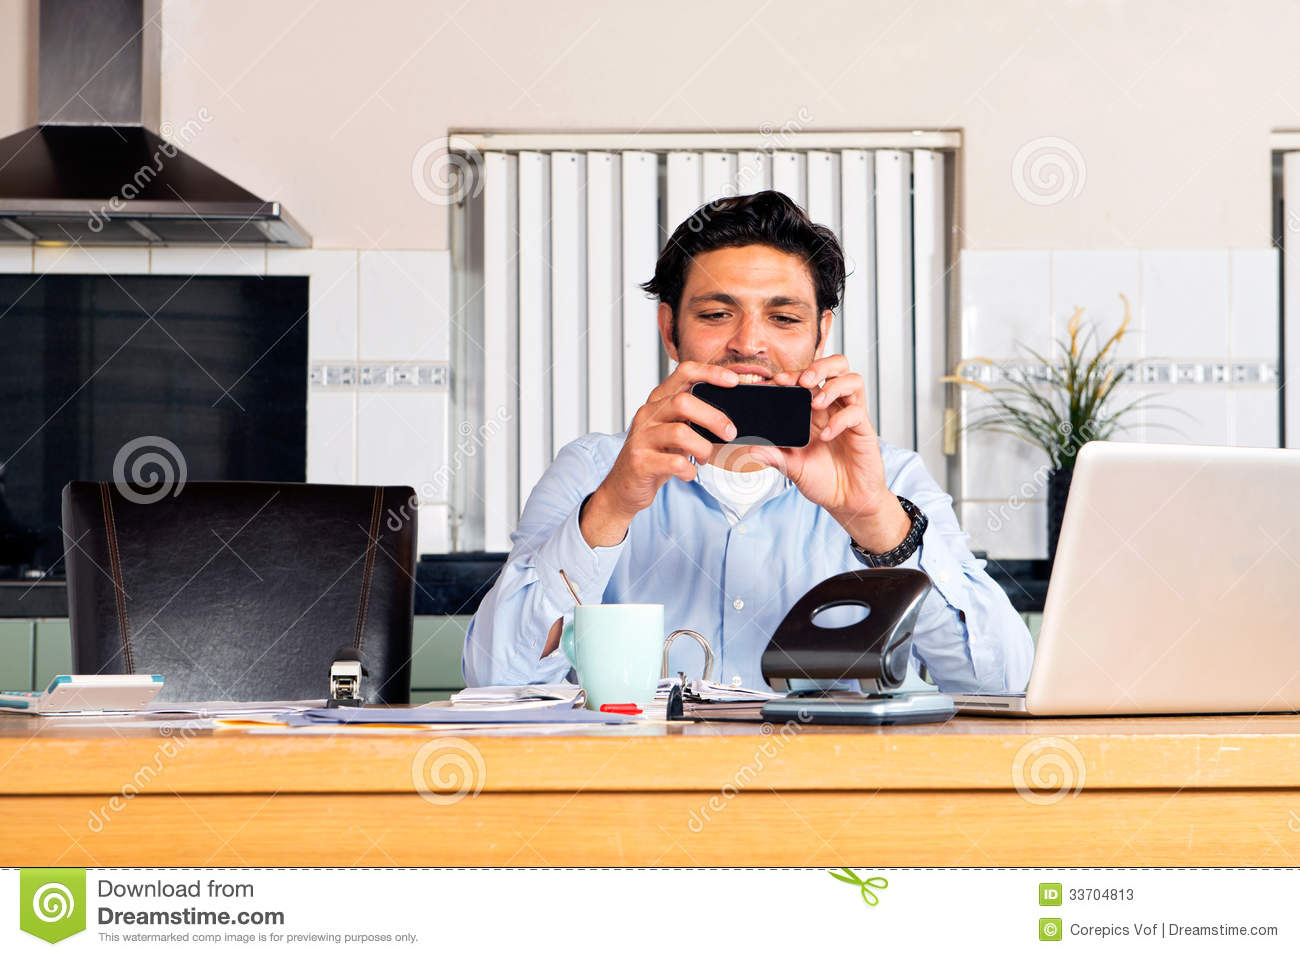 Mobile Banking Stock Image Of Home Laptop Investing 33704813 Wiring Money How To Handsome Man And Paying Bills Using His Phone The New Way Transferring Not Only In A Environment Such As At Kitchen